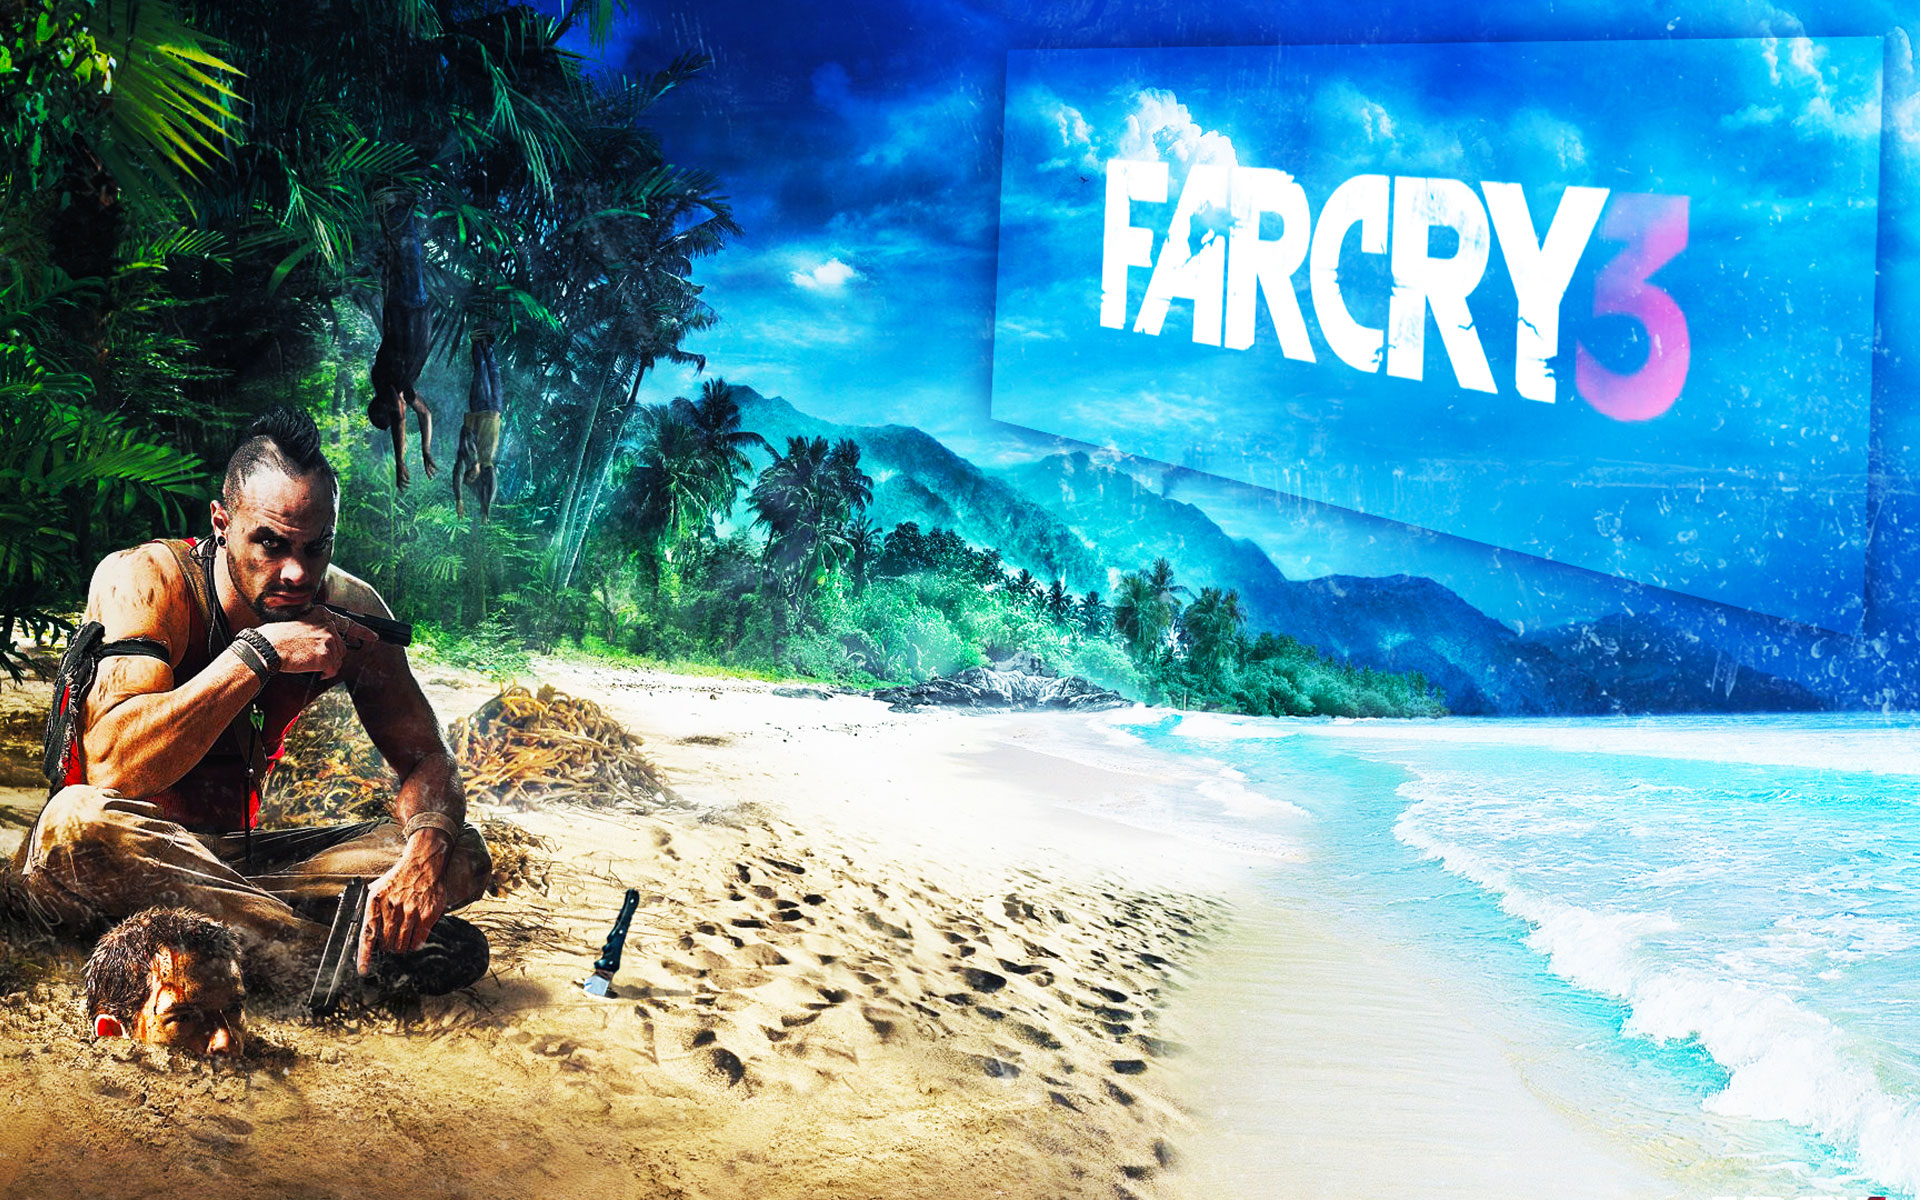 Awesome Far Cry 3 Wallpaper 1920x1200 1920x1200